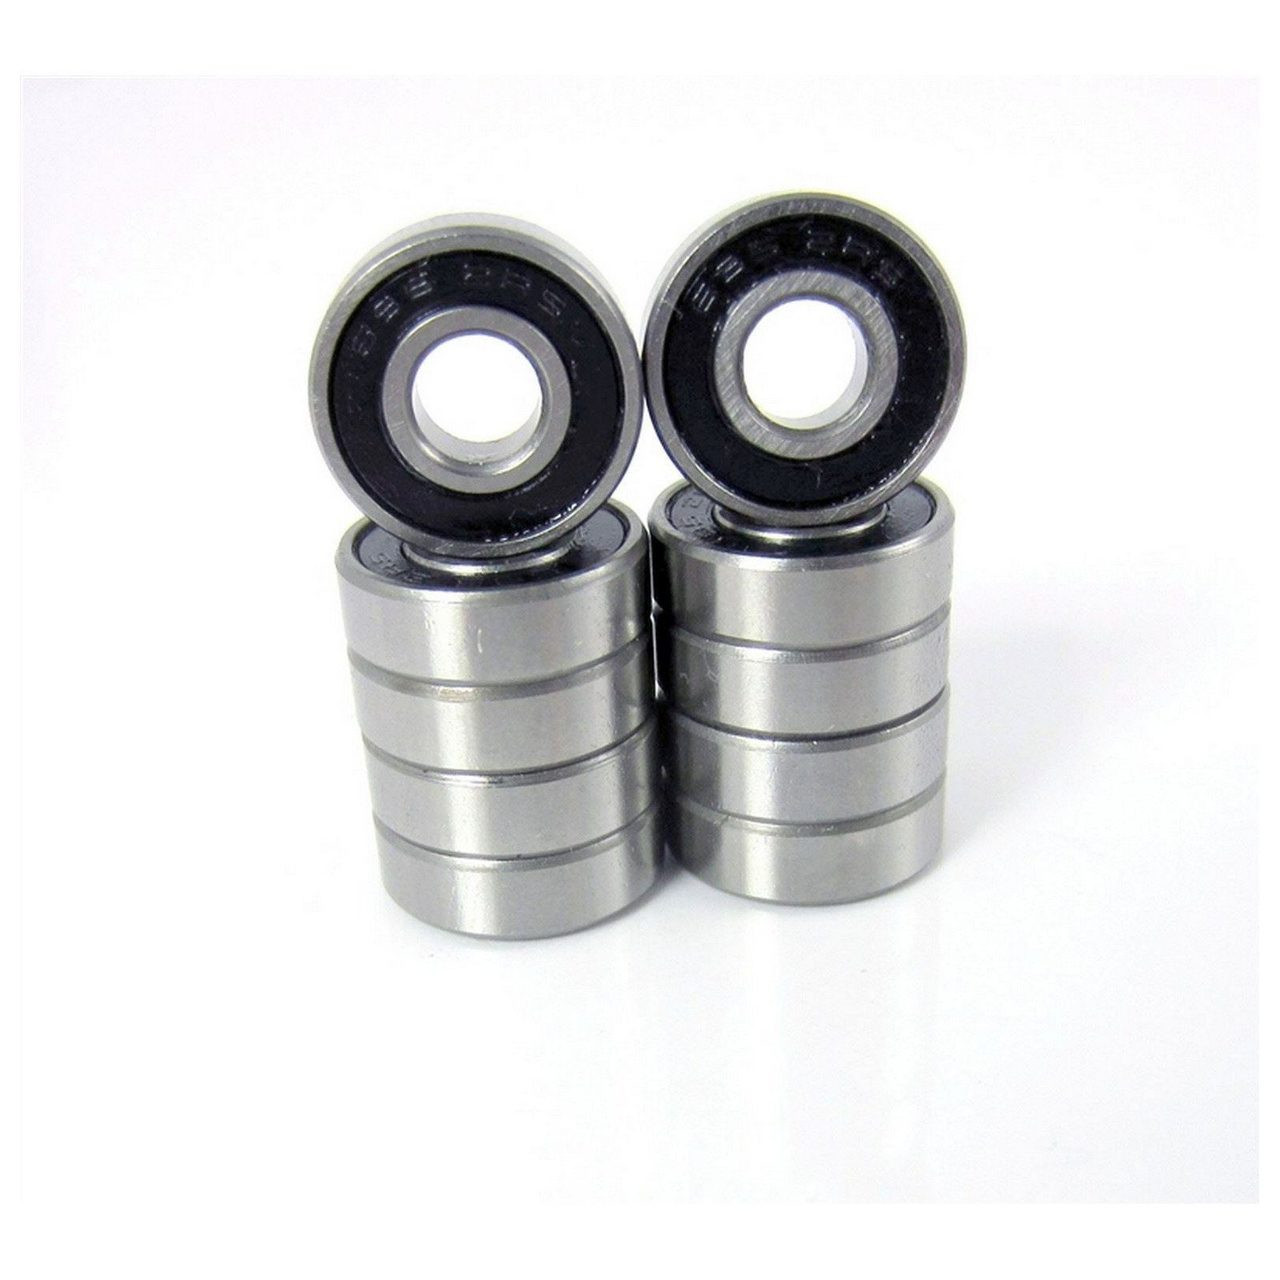 TRB RC 5x13x4mm Precision Ball Bearings ABEC 3 Rubber Sealed (10)